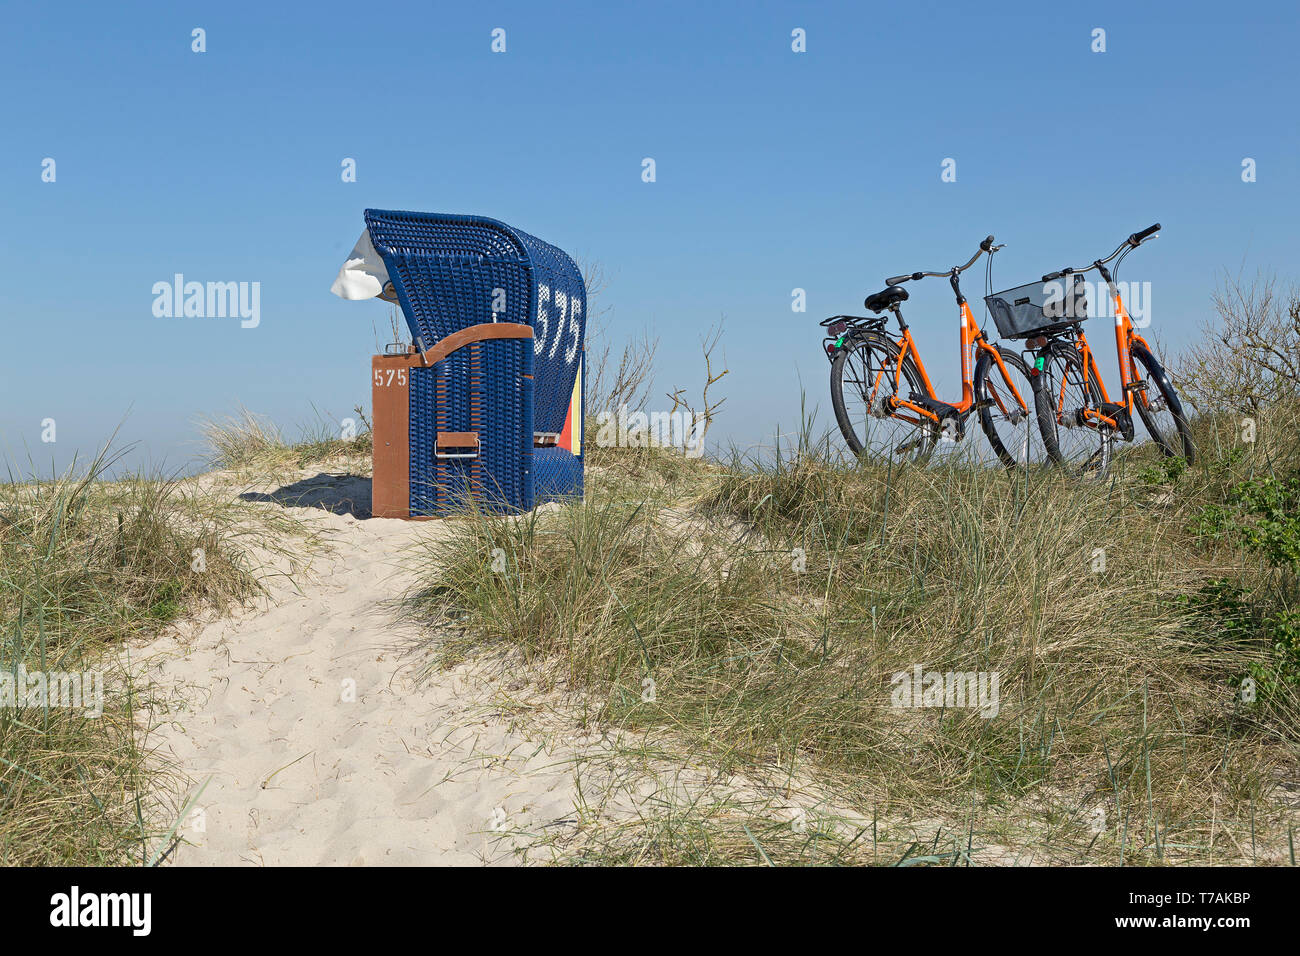 beach chair and bicycles in the dunes, Hooksiel, Wangerland, Lower Saxony, Germany - Stock Image